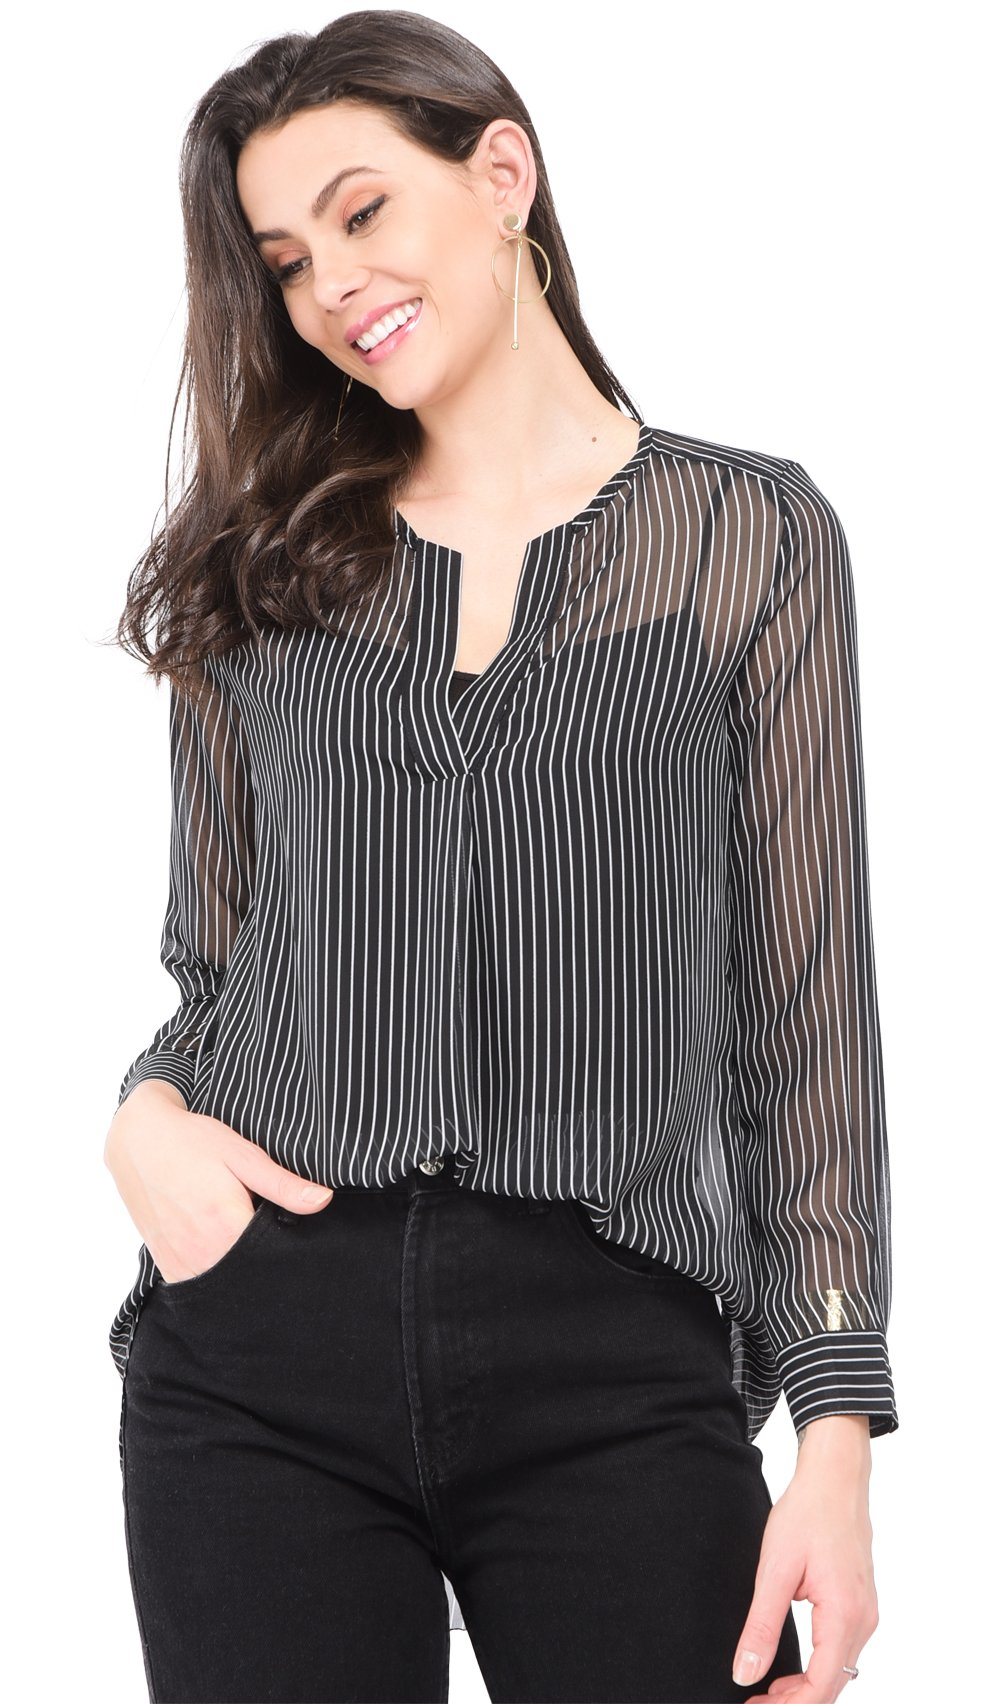 TRANSPARENT BLOUSE WITH TUNISIAN COLLAR AND VERTICAL STRIPES